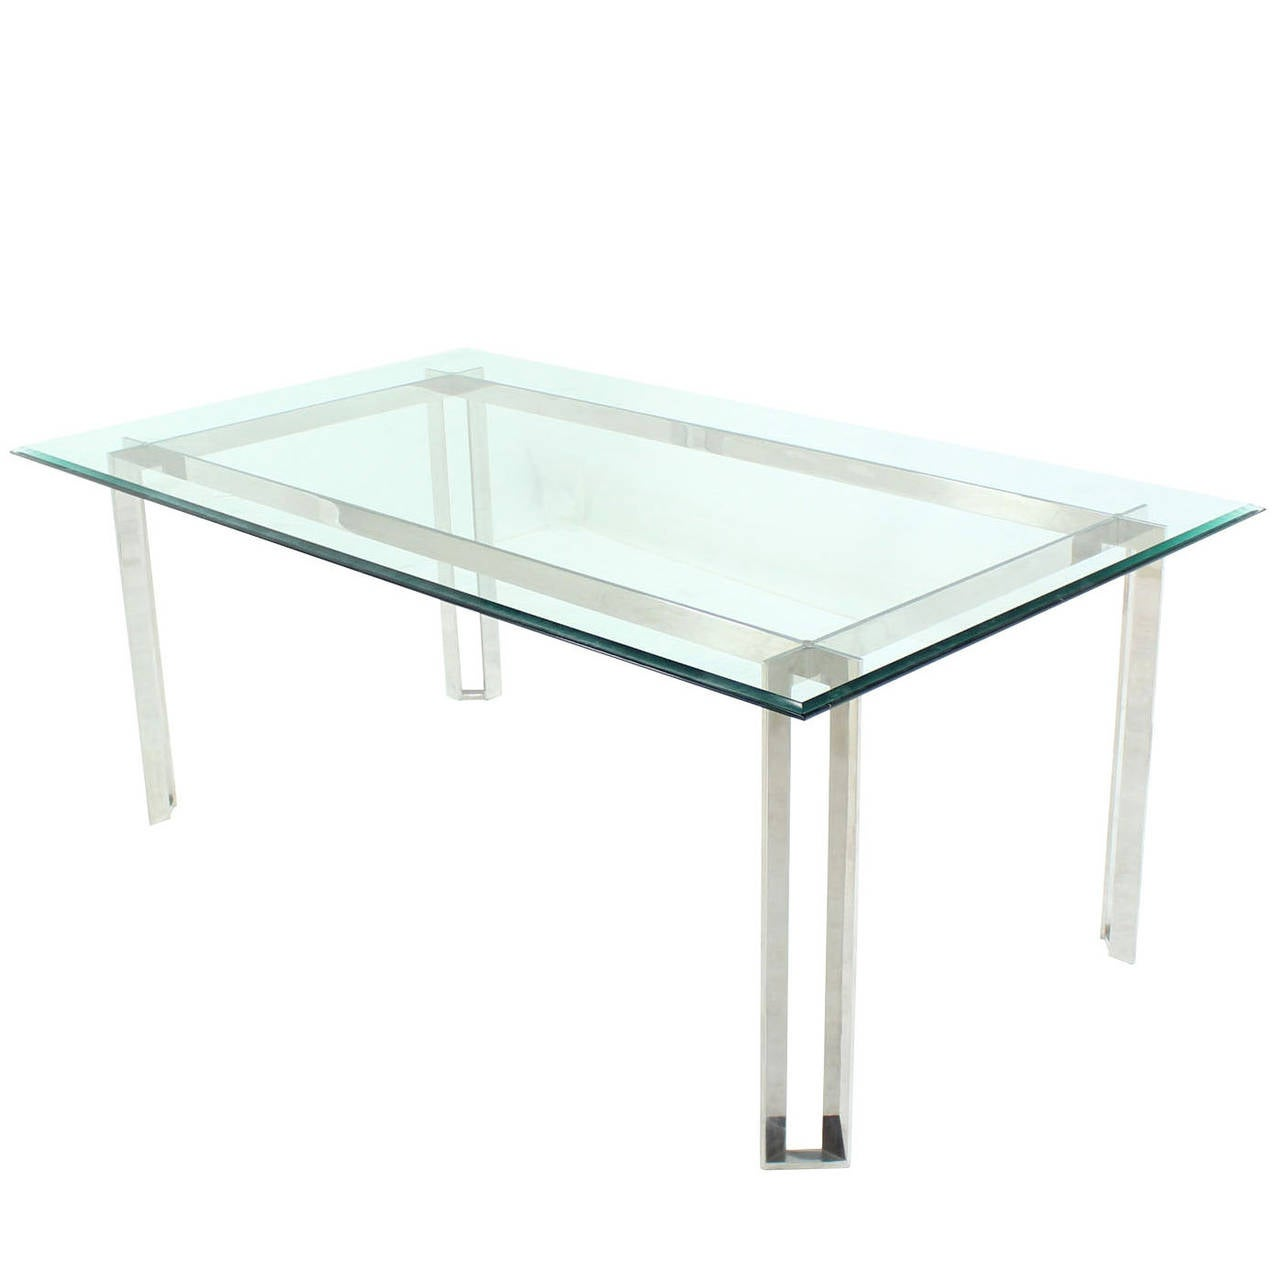 Polished Stainless Steel And Thick Glass Top Dining Room Table For Sale